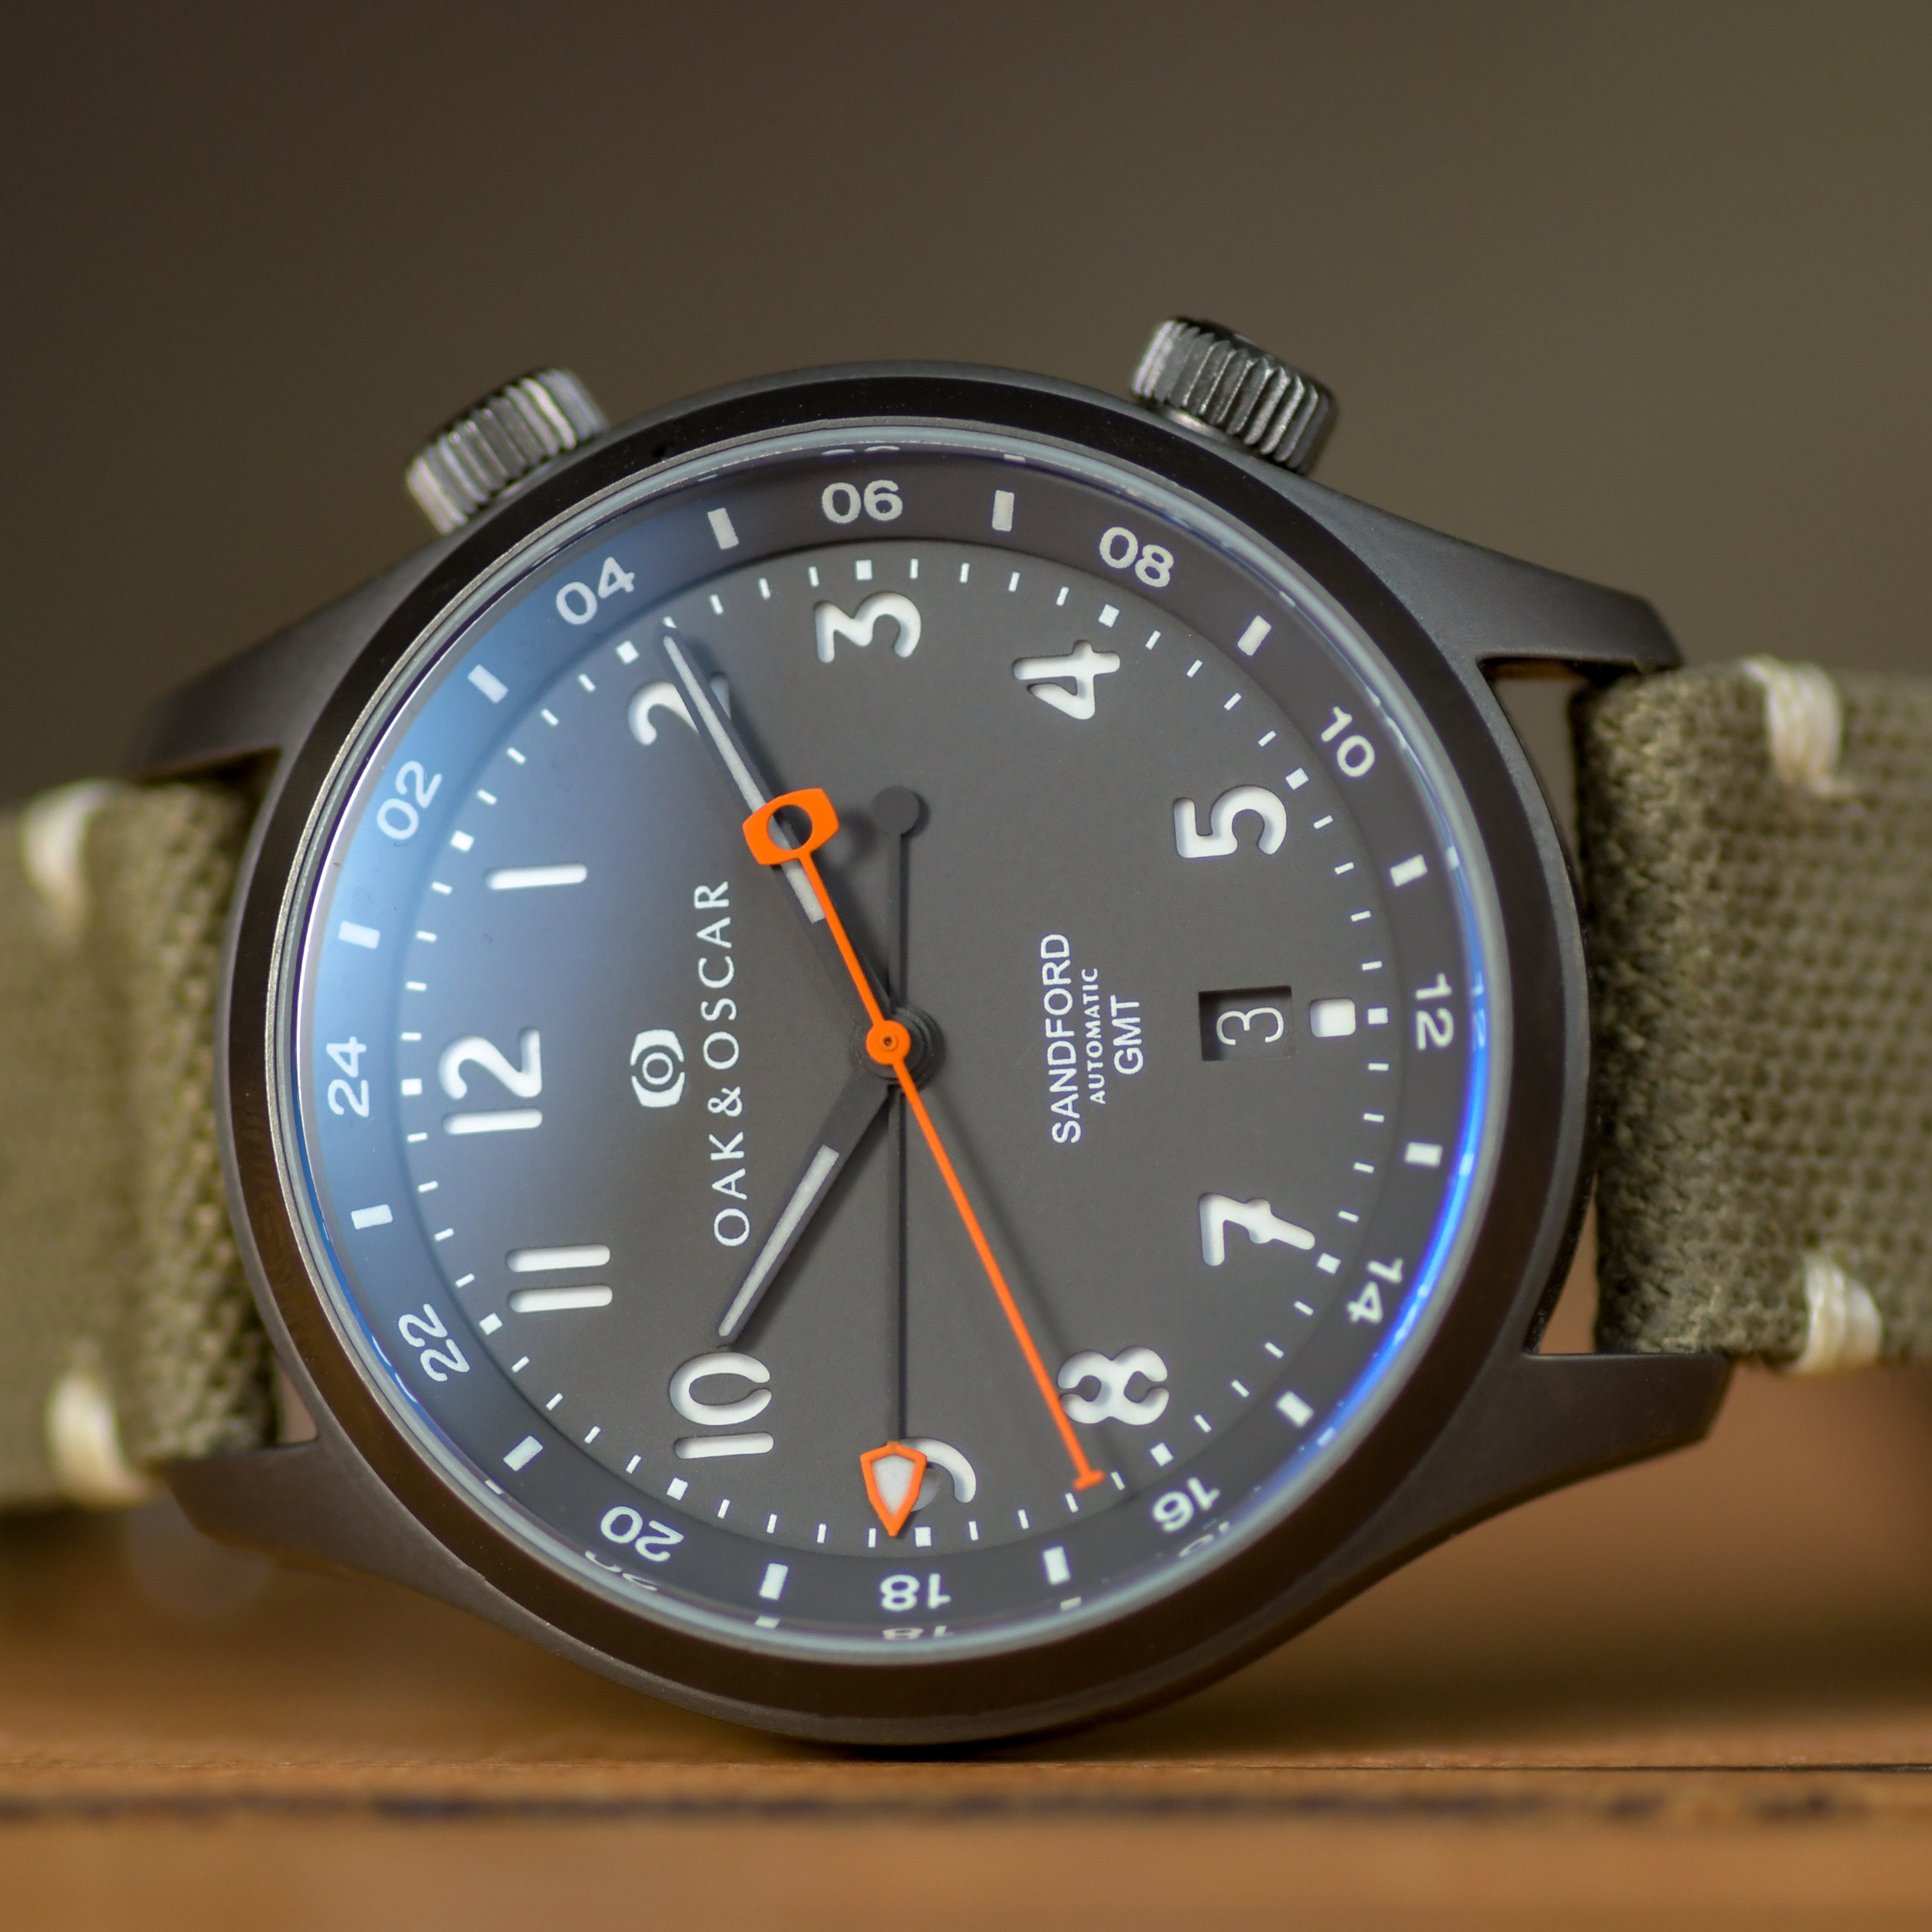 GMT Hand - Inspired by Chase's love of arrowheads and stone tools as both a kid and later in university (he actually took a class on the history of stone tools...!), the GMT hand design mimics that of an arrowhead. The lolli-pop counter balance of the GMT hand fits inside the counter balance of the orange seconds hand perfectly as they sweep by one another.The shape is both unique and distinctive and has become an identifying design detail of the Sandford.